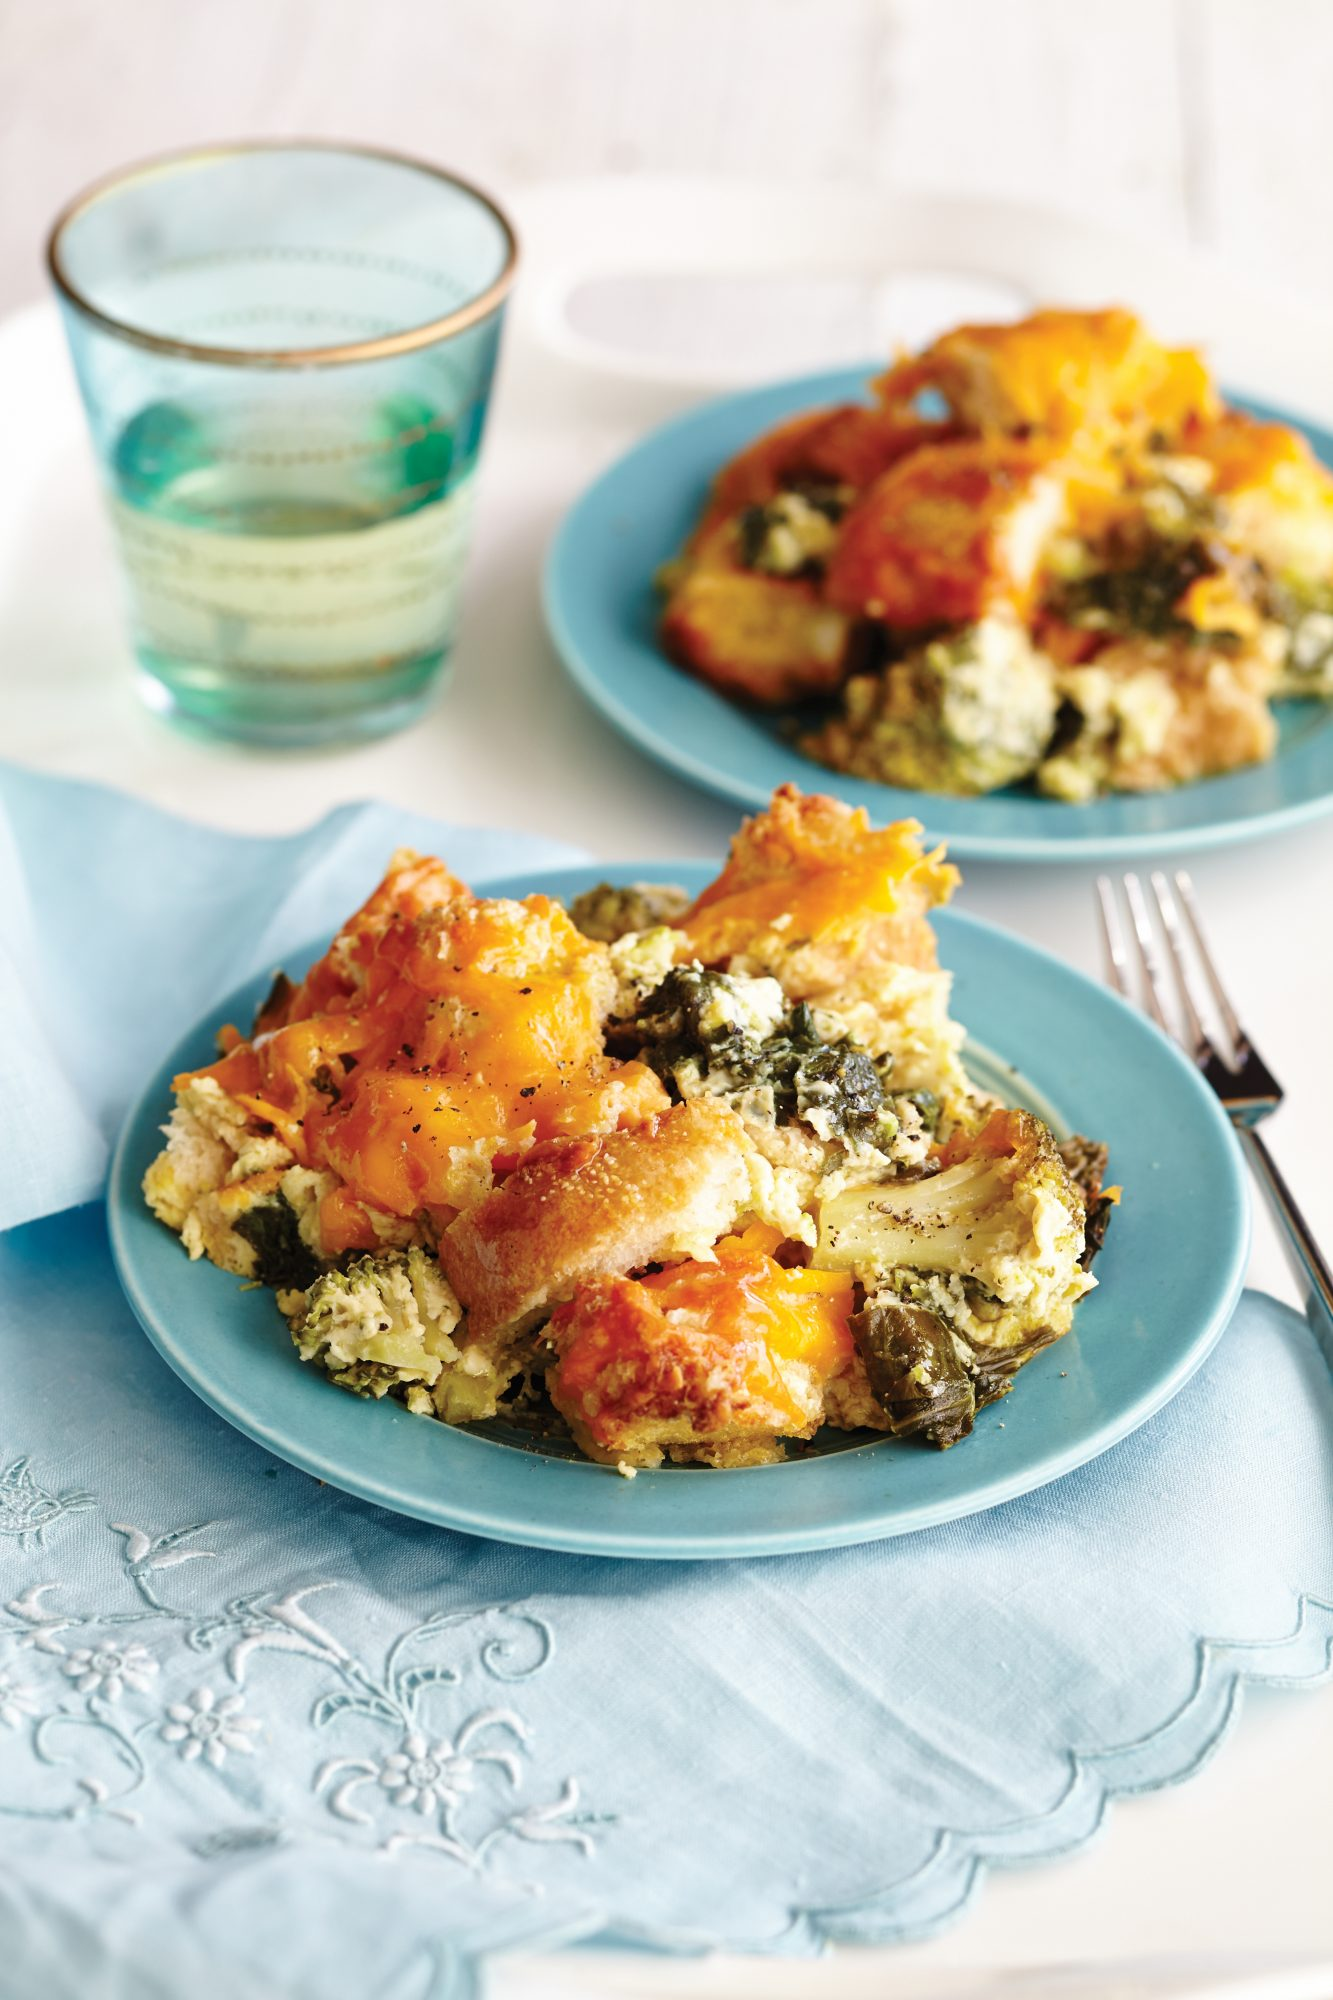 Spinach-and-Broccoli Breakfast Bread Pudding Recipe ...